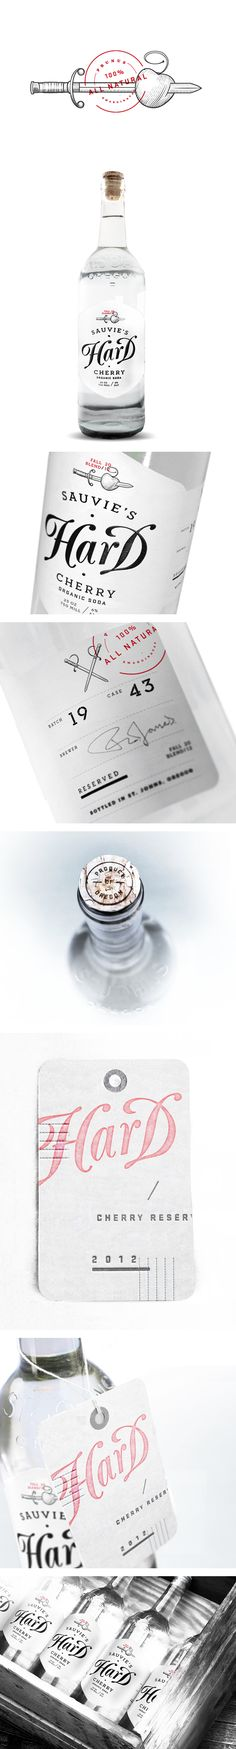 Bottle & Label / Brand / by Orion Janeczek